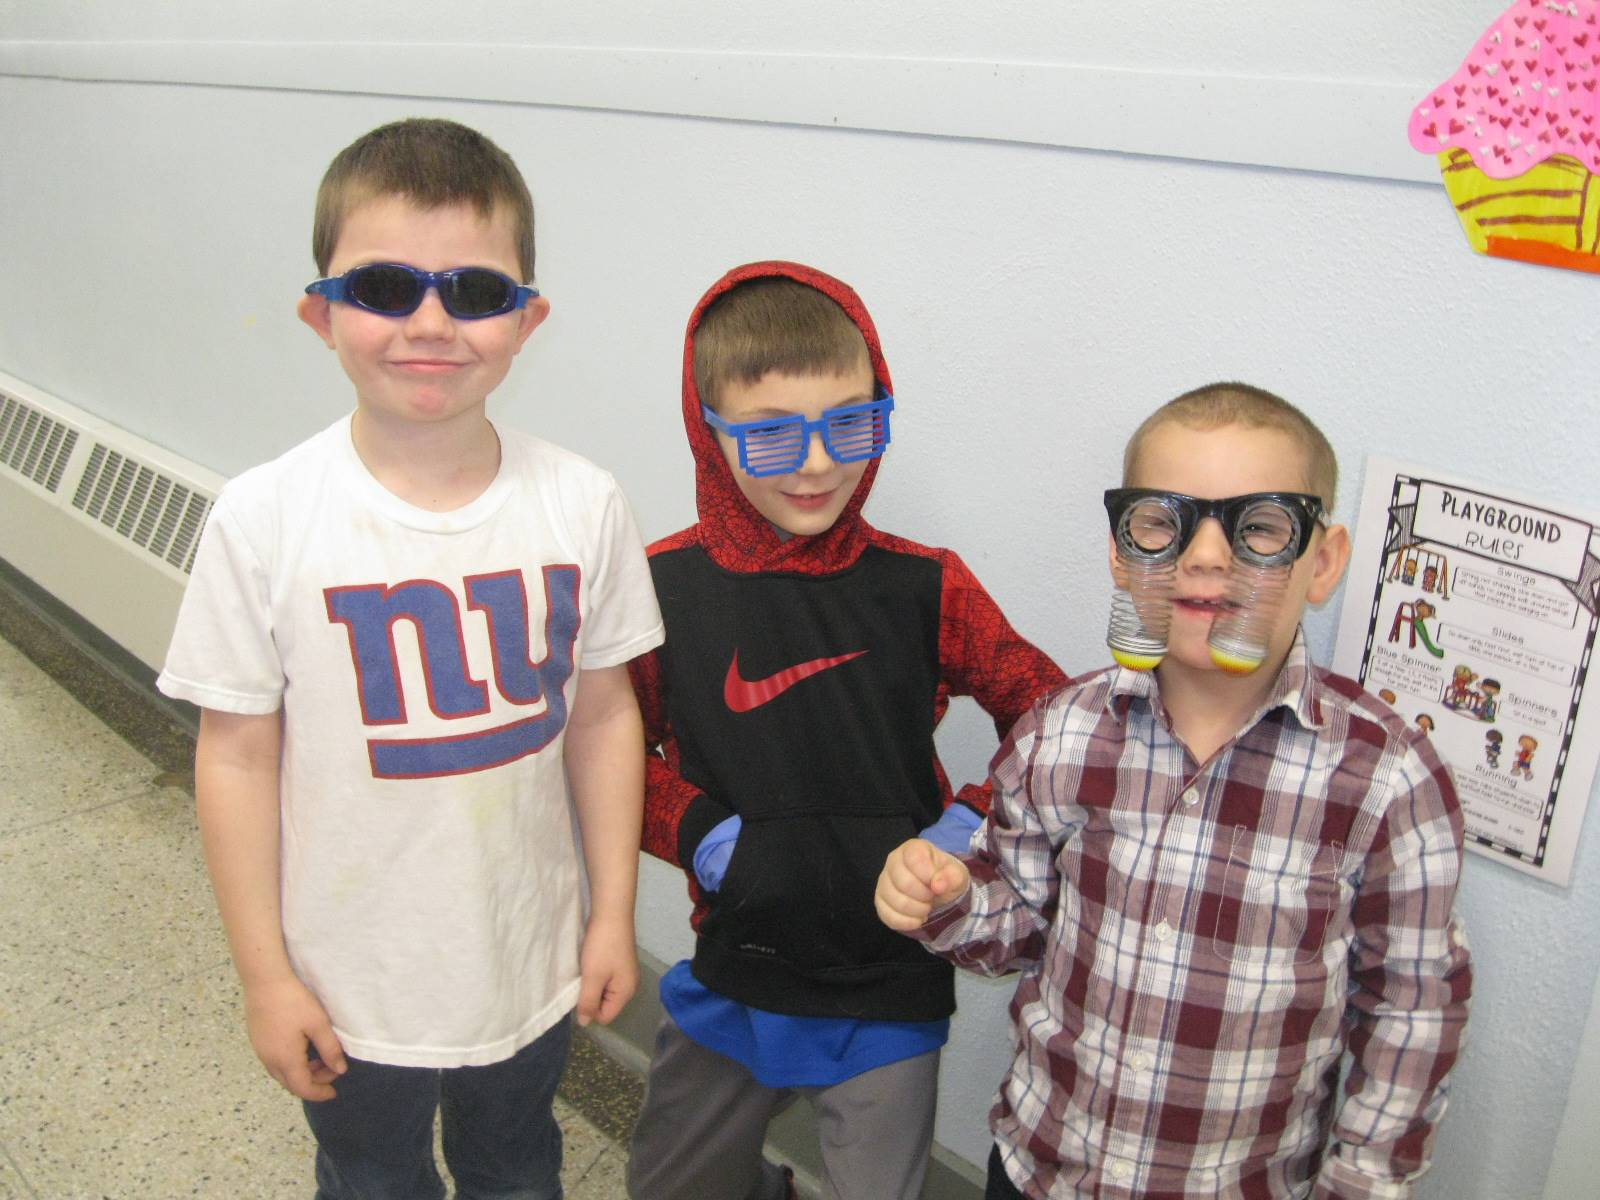 3 COOL Students